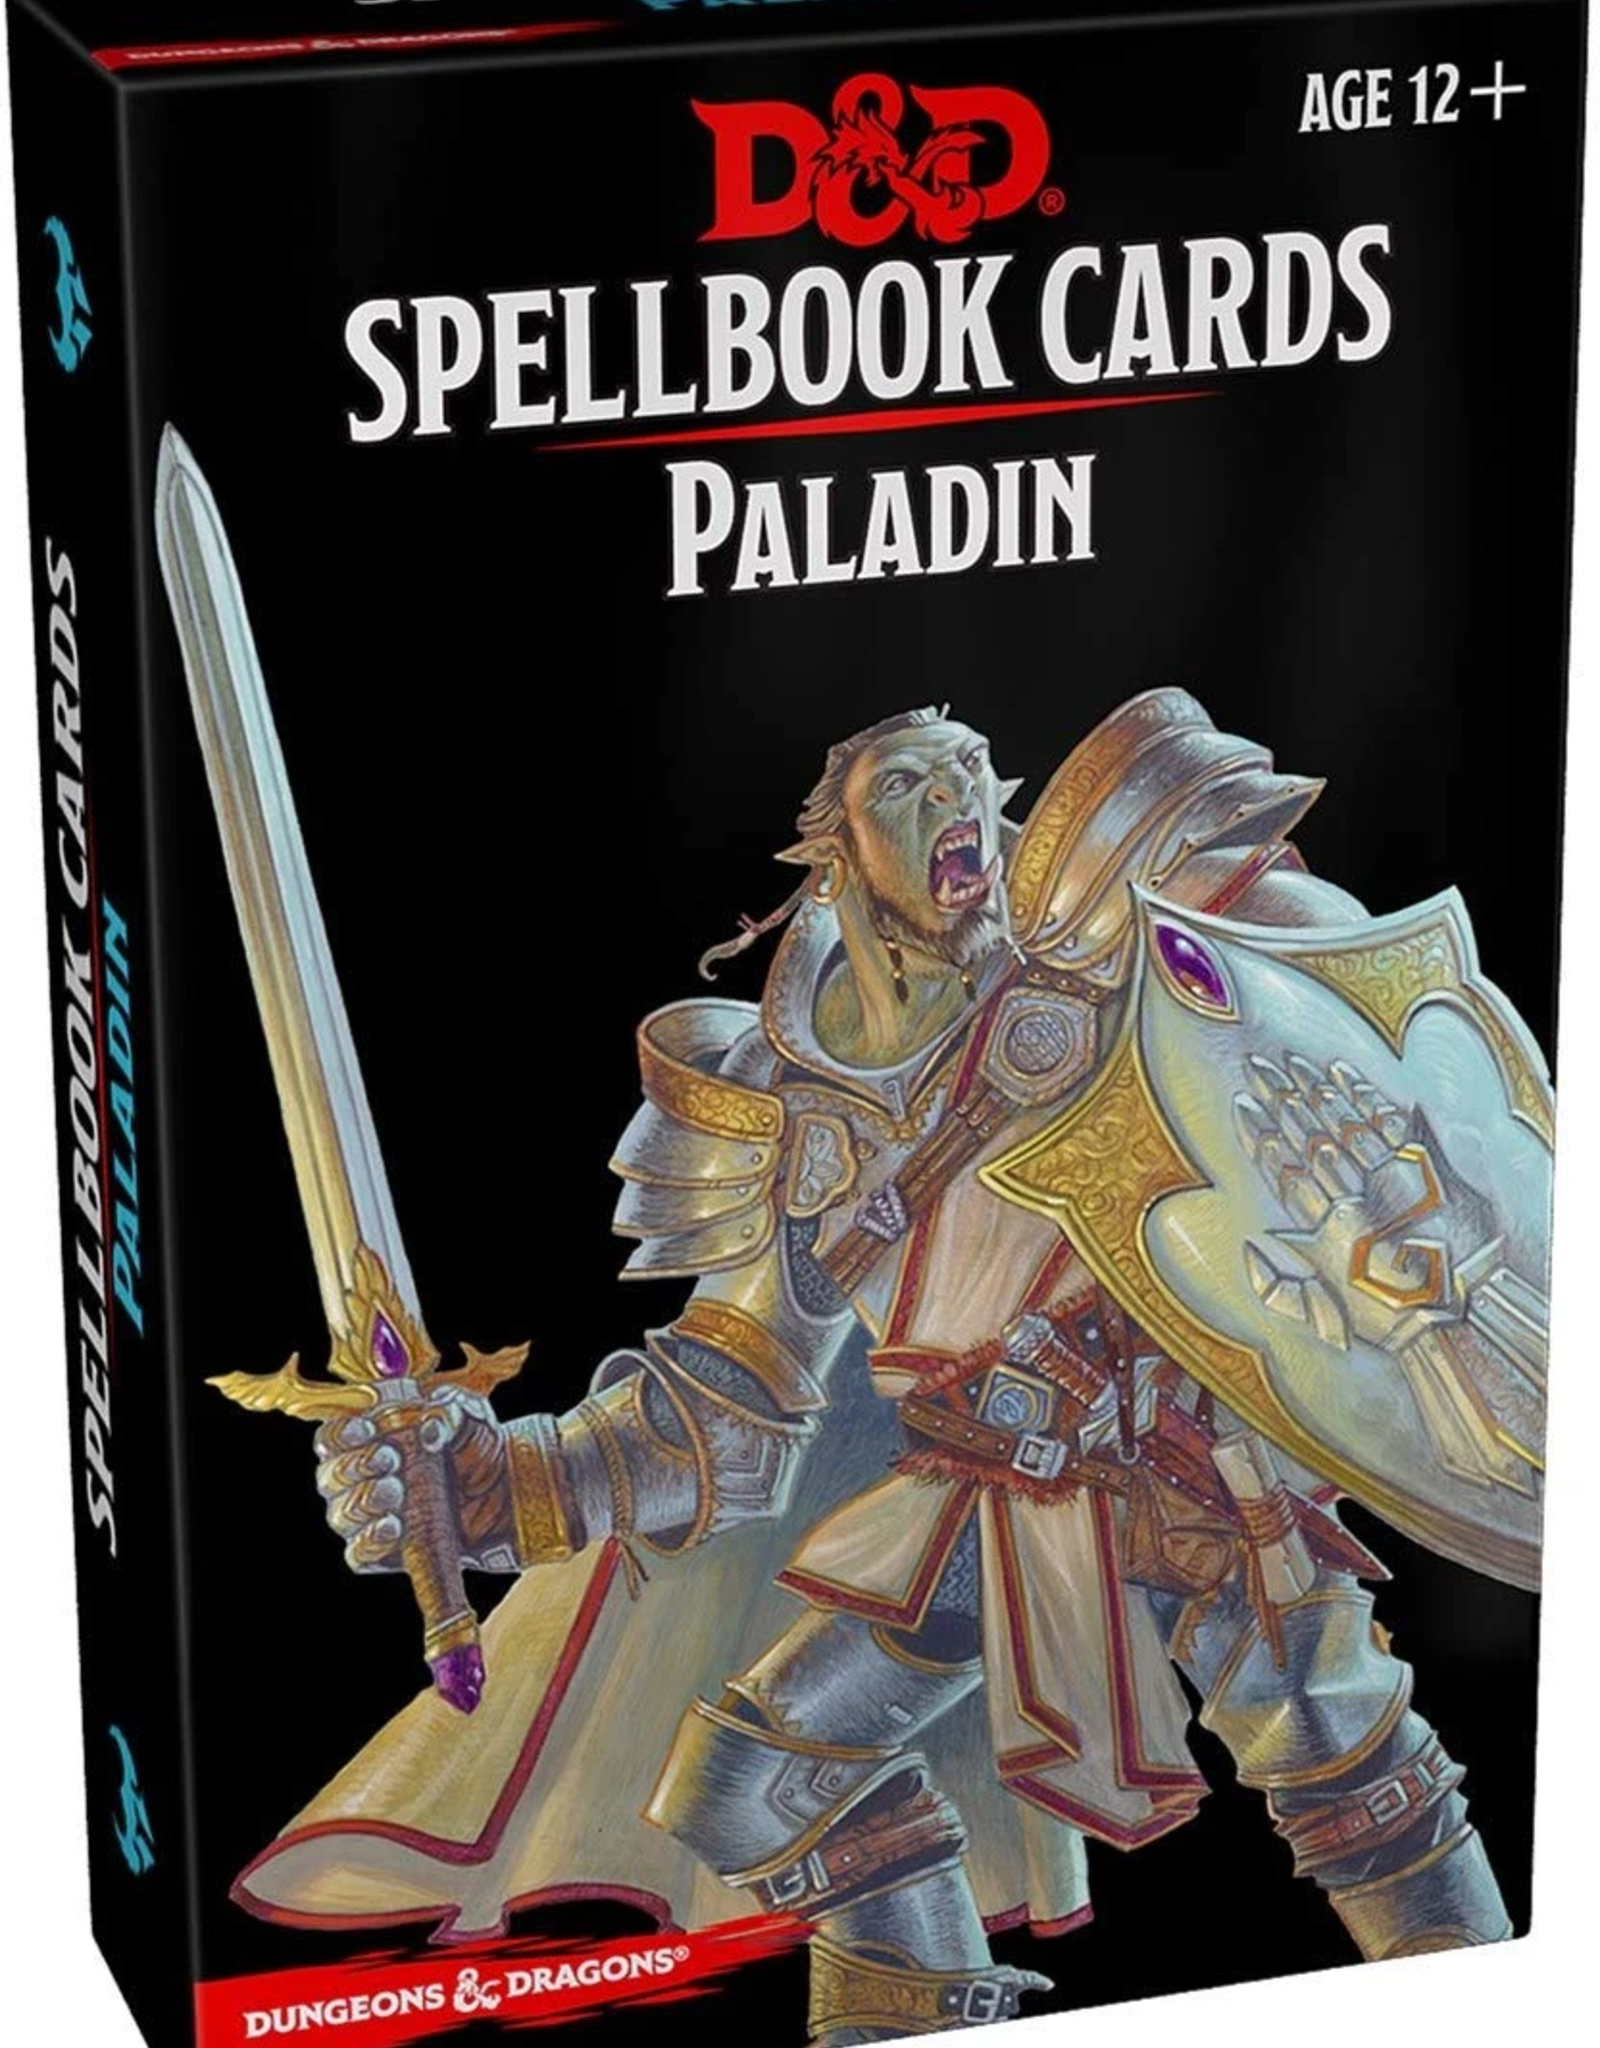 Gale Force 9 Dungeons & Dragons Spellbook Cards Paladin